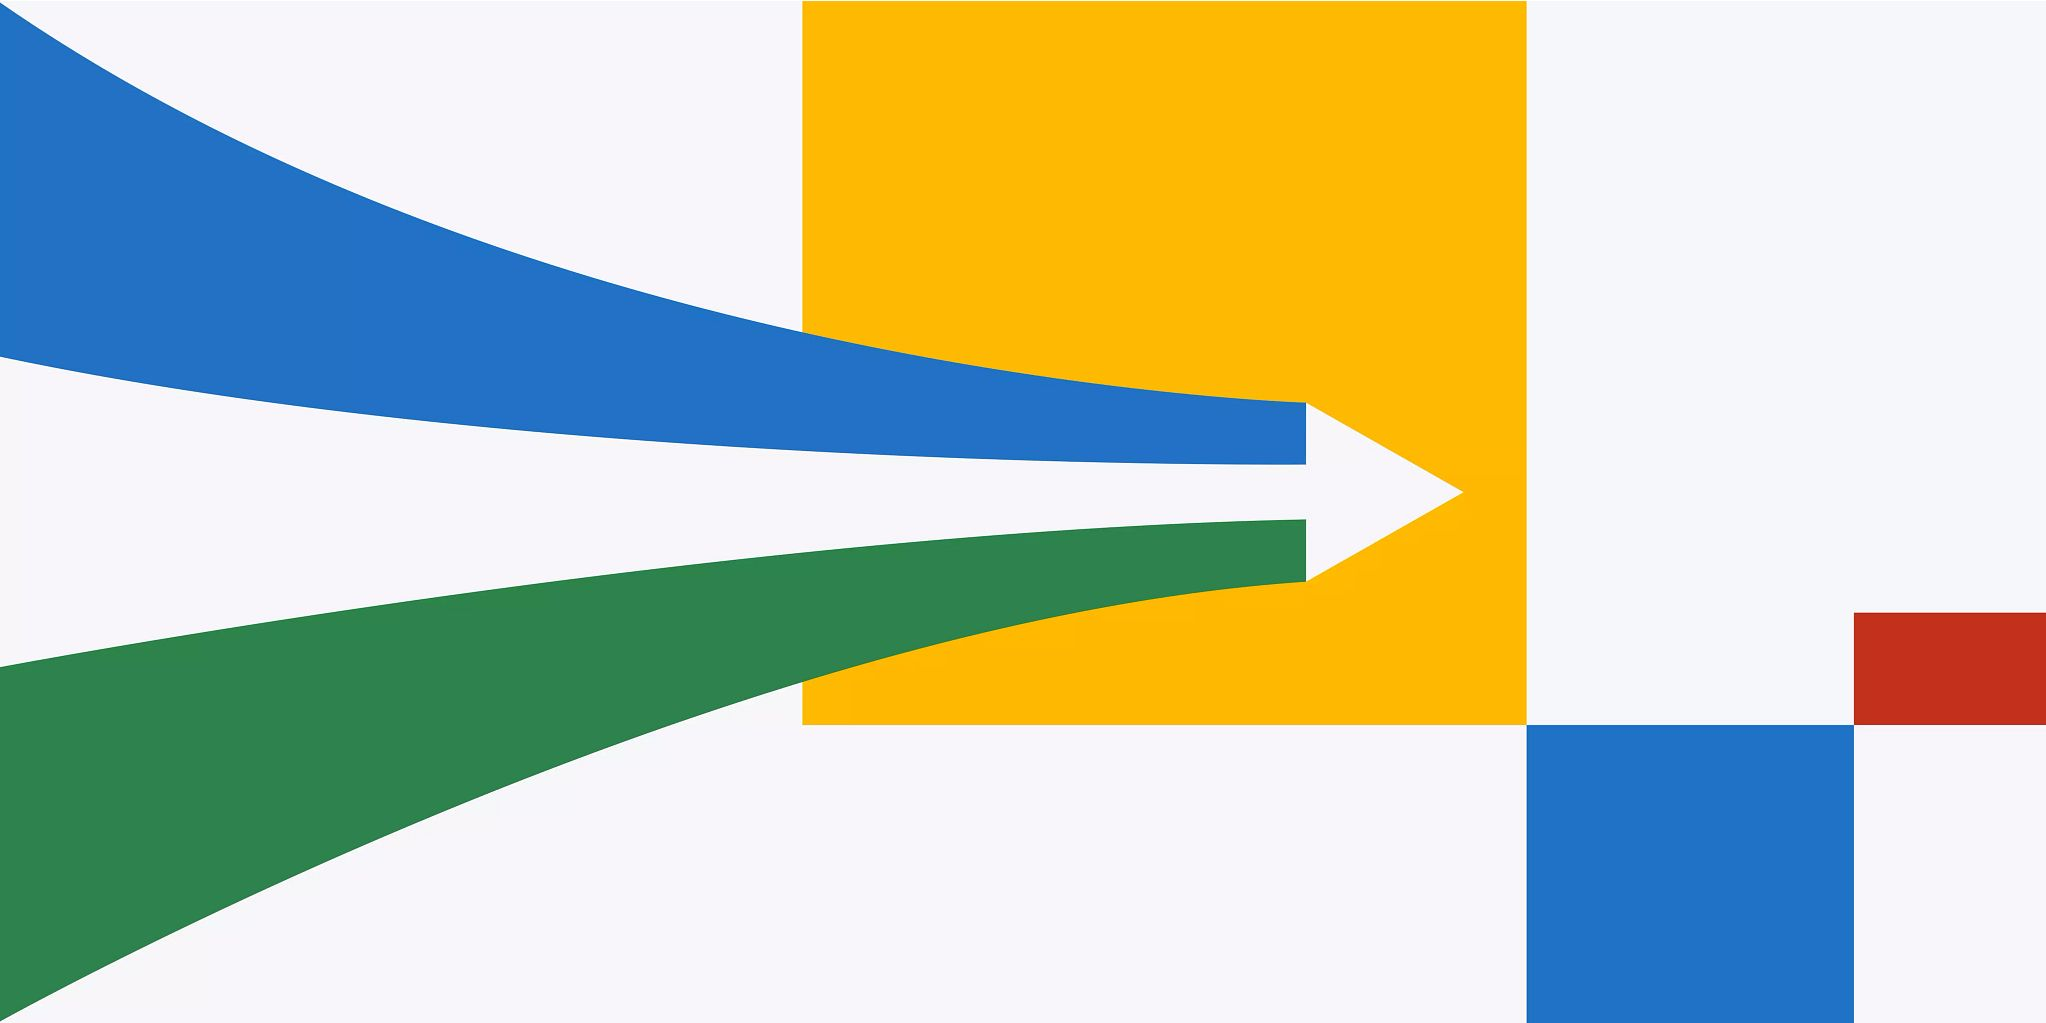 Tri-colored arrow coming in from the left side of the image. The base takes up the full height of the graphic and then narrows to the arrow point as it passes the center of the illustration. The right half of the design is comprised of the squares in varying sizes and colors.